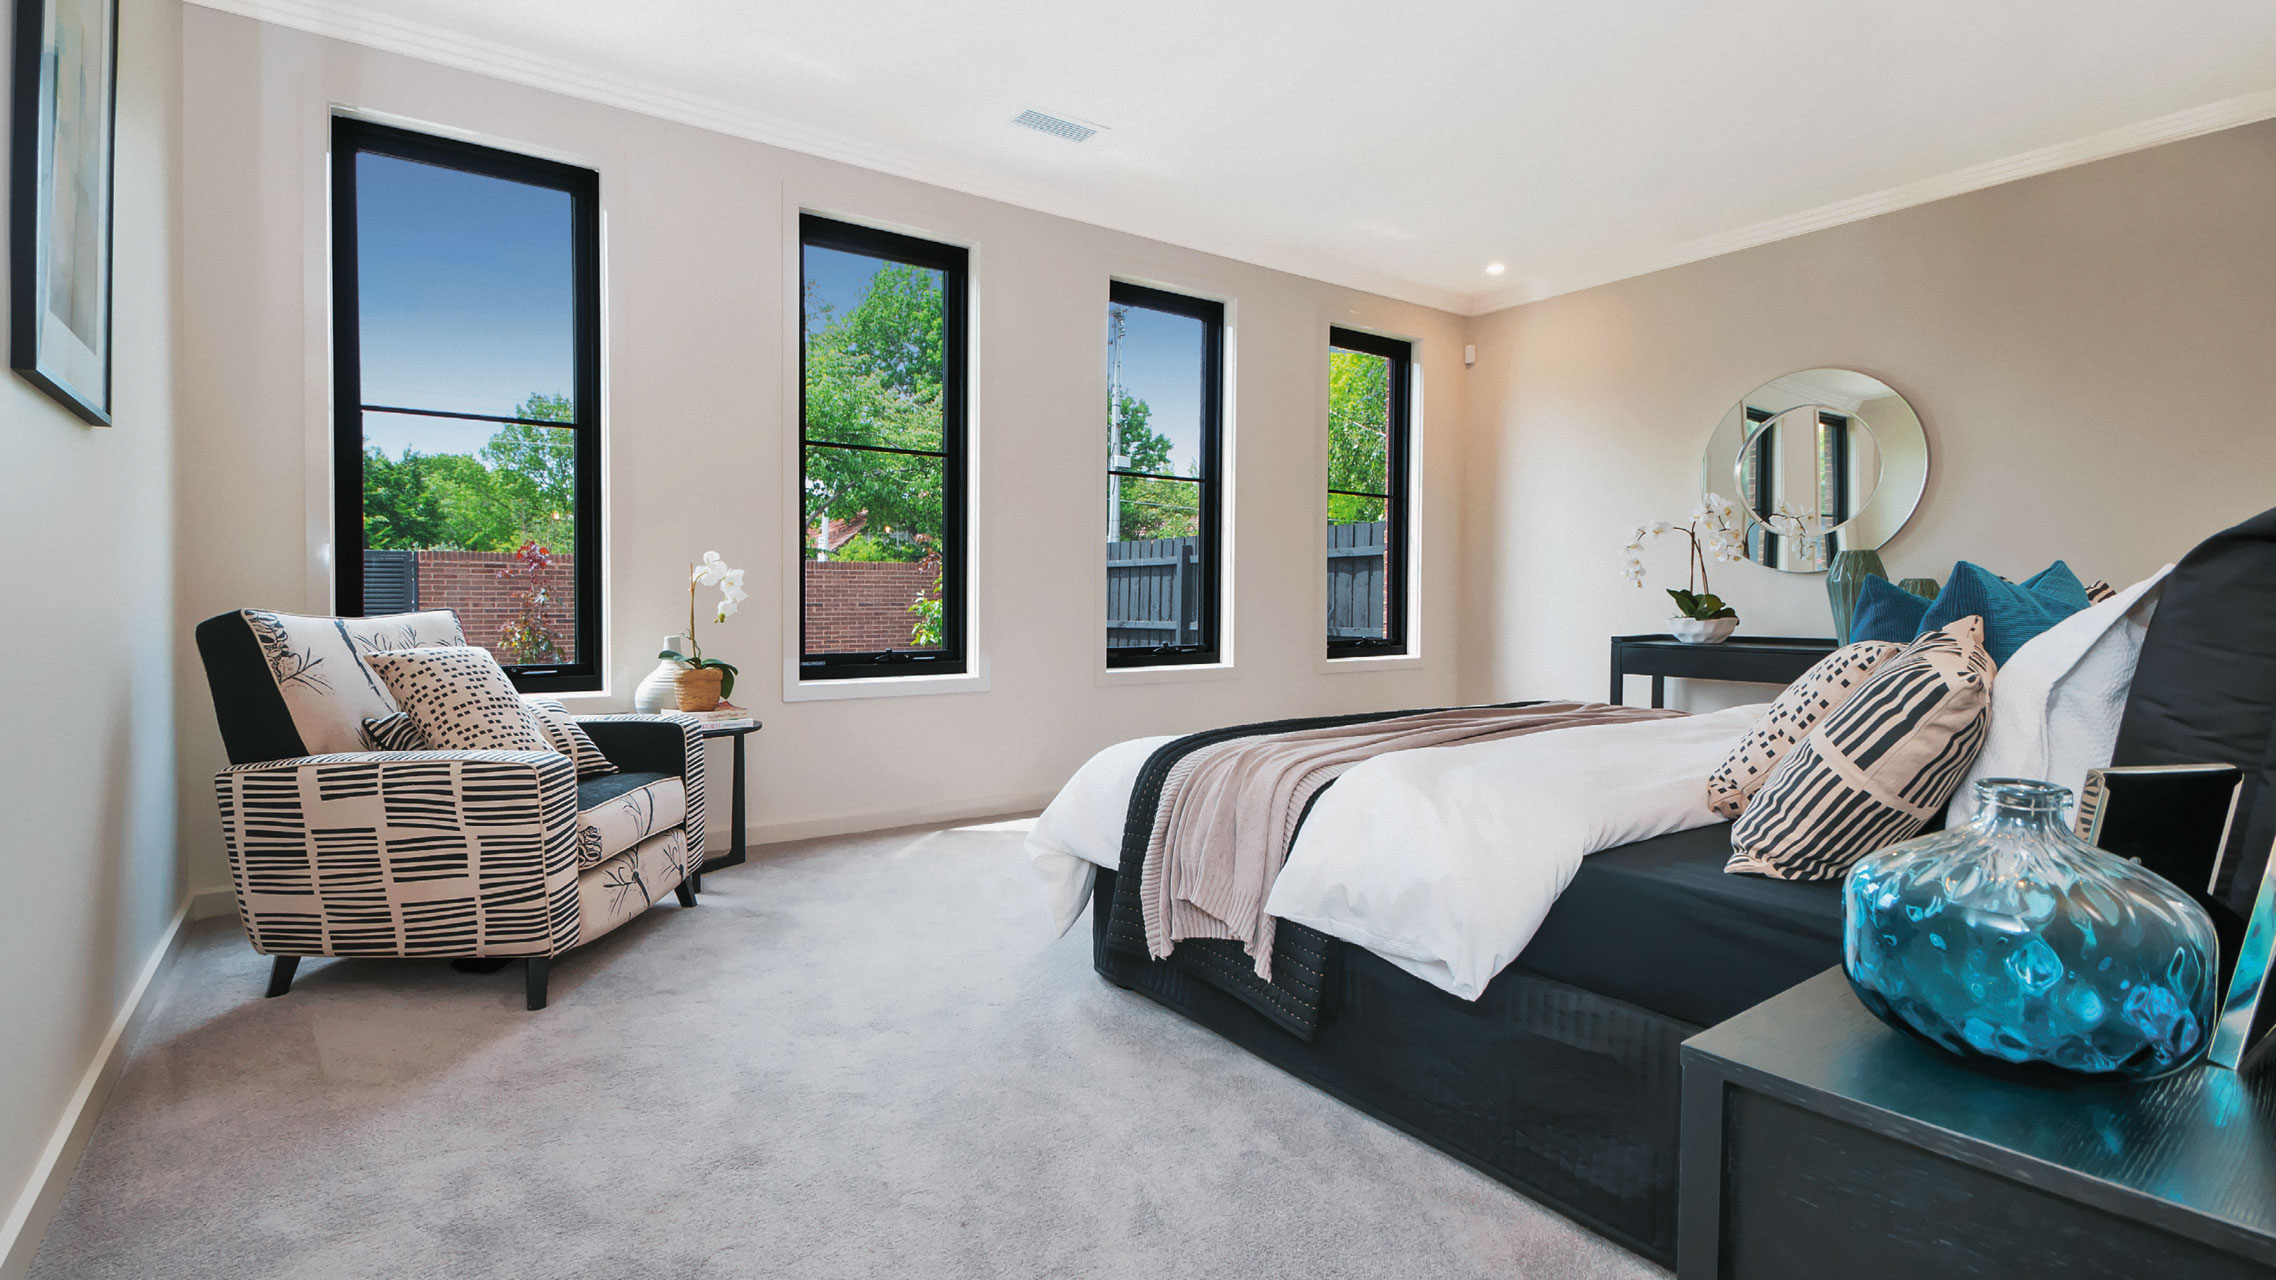 Four Black Aluminium Awning Windows in a bedroom